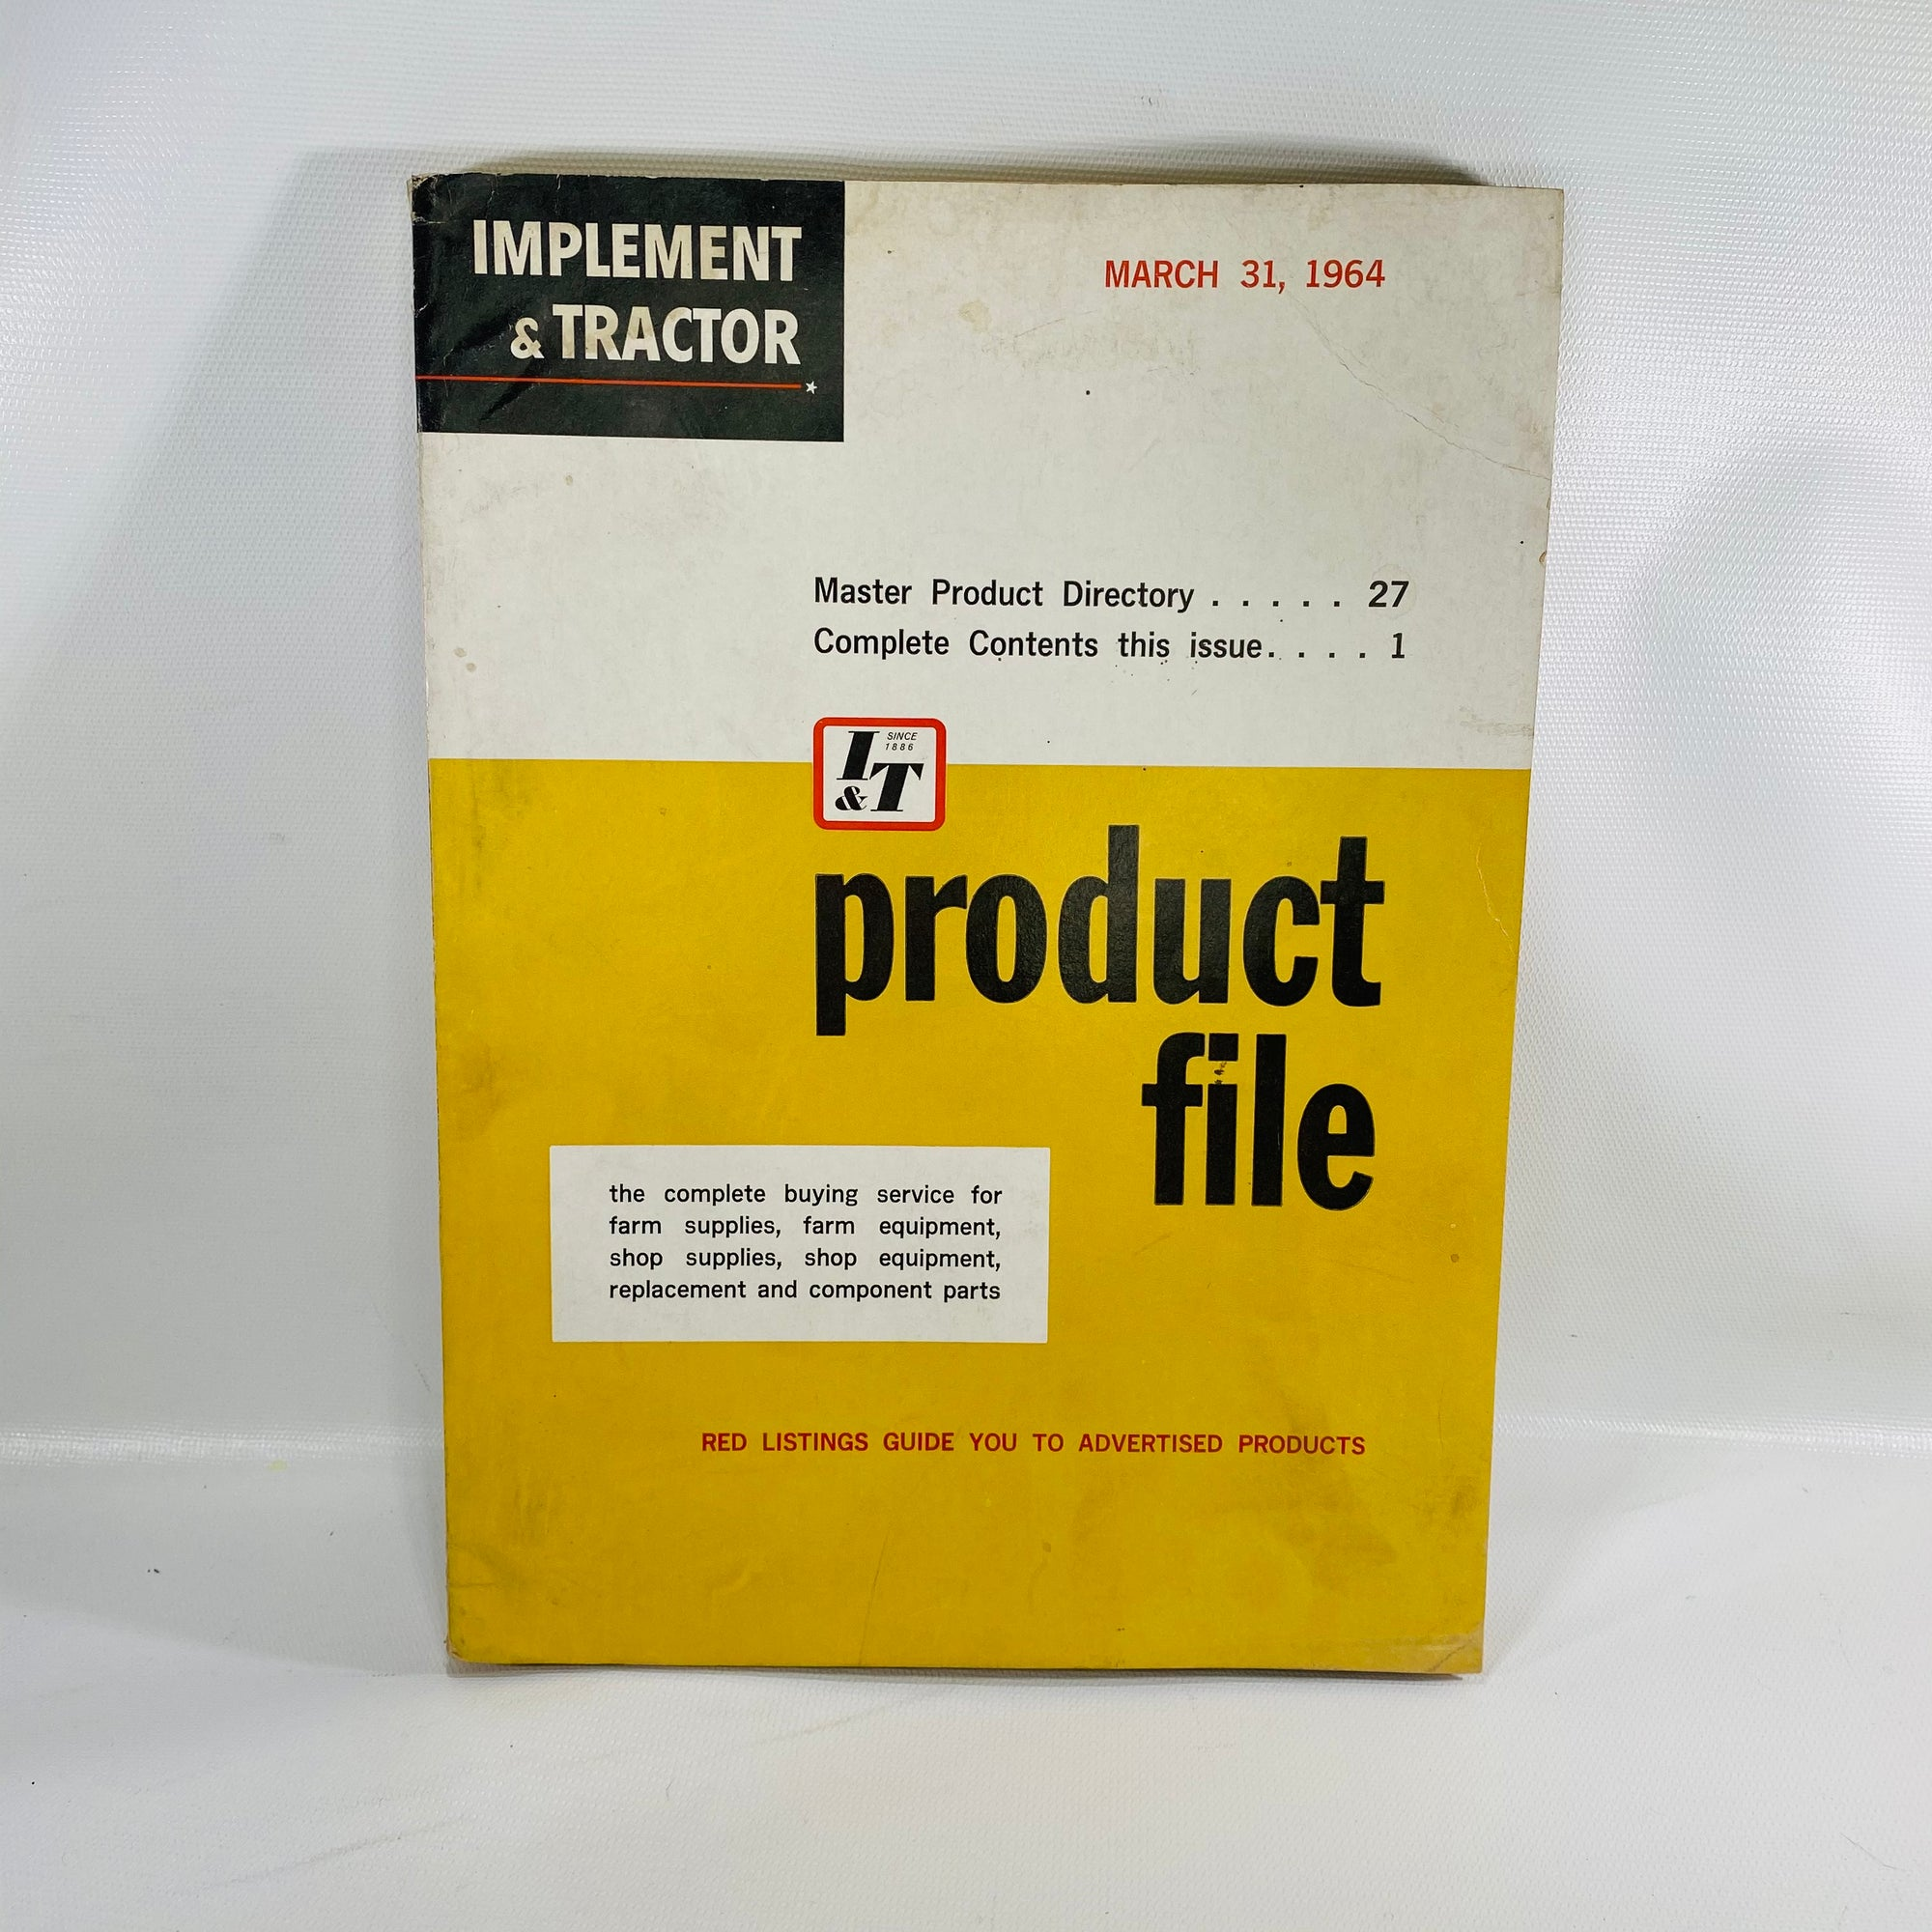 Implement & Tractor Product File March 31, 1964-Reading Vintage